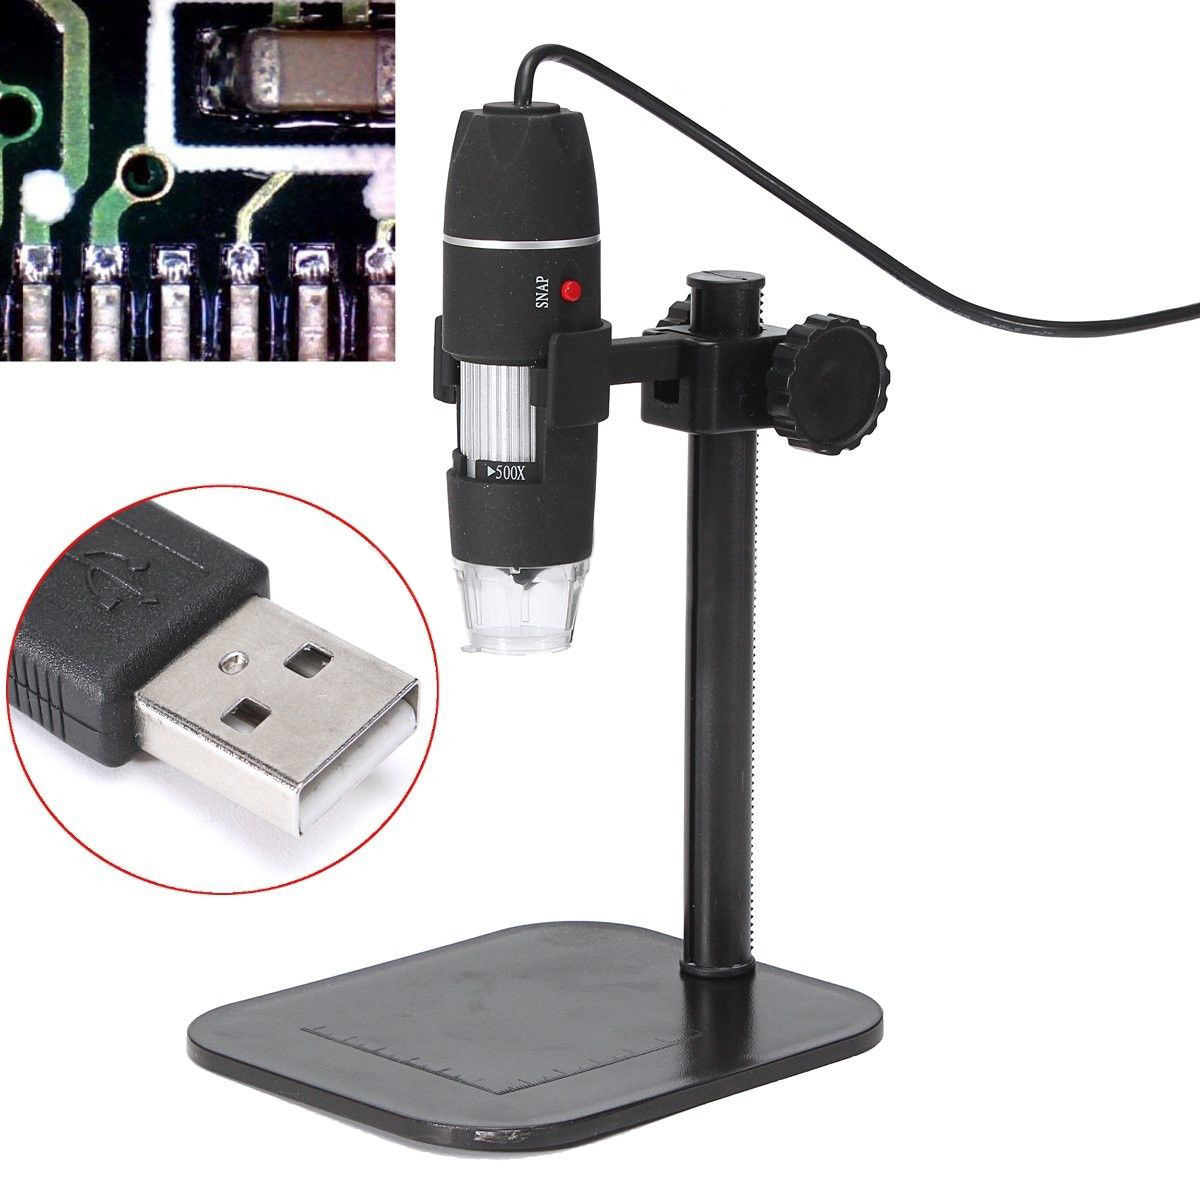 5MP Digital Camera Microscope Magnifier 1X-500X 5V DC Video Black Electronic USB Microscopes With Lift Stand Measuring Tool